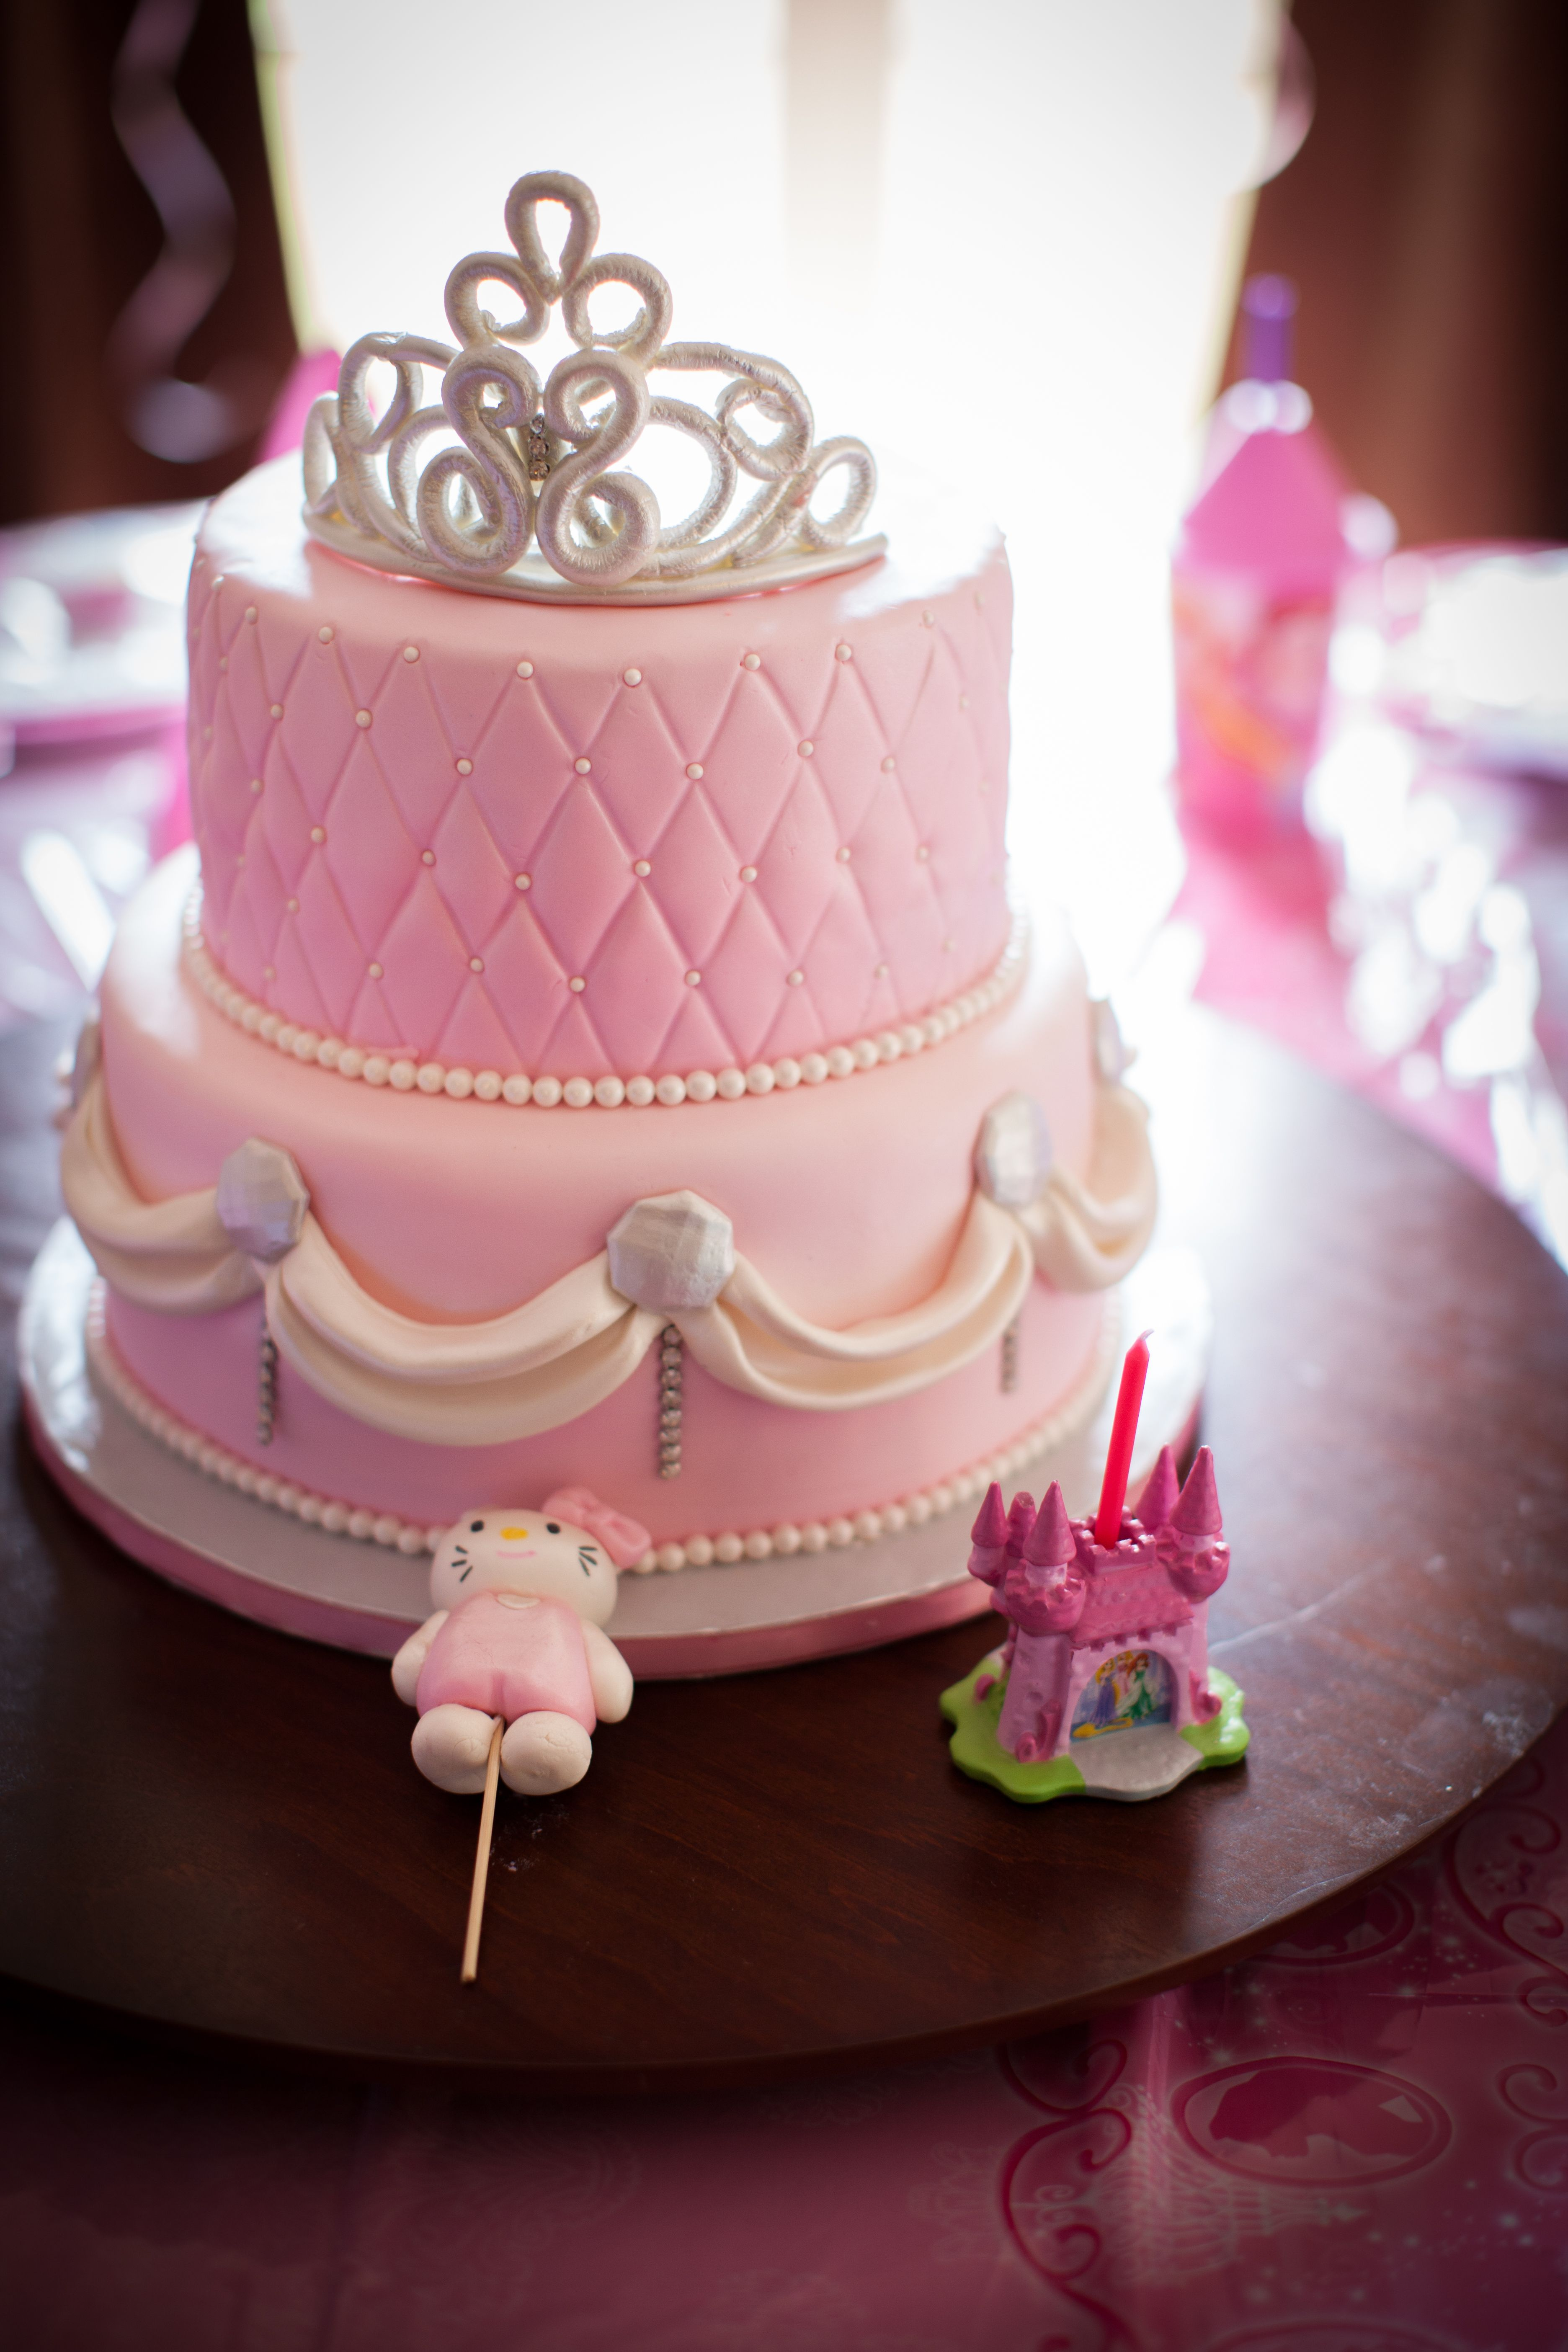 Pin By Cales Cantrall On Princess Birthday Party Ideas In